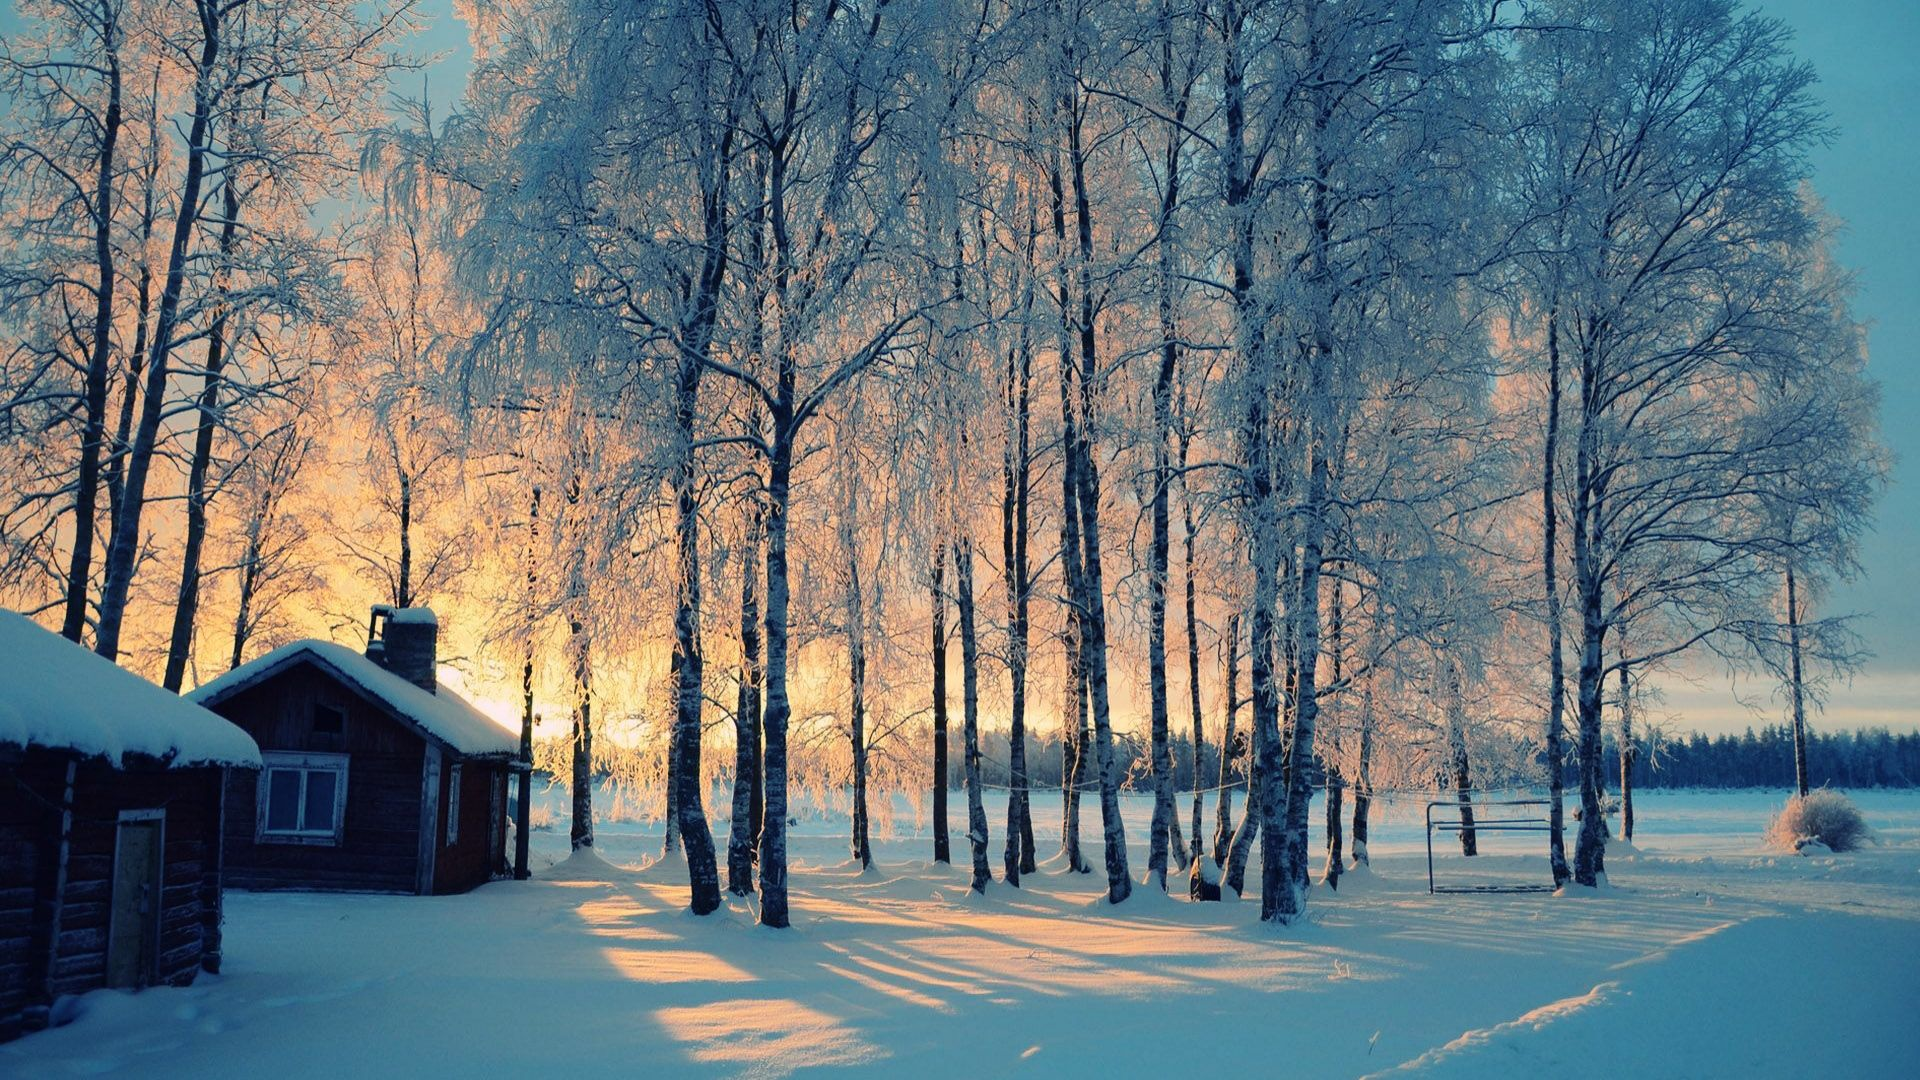 Winter Wallpaper Widescreen Winter Wallpaper Desktop Winter Landscape Winter Wallpaper